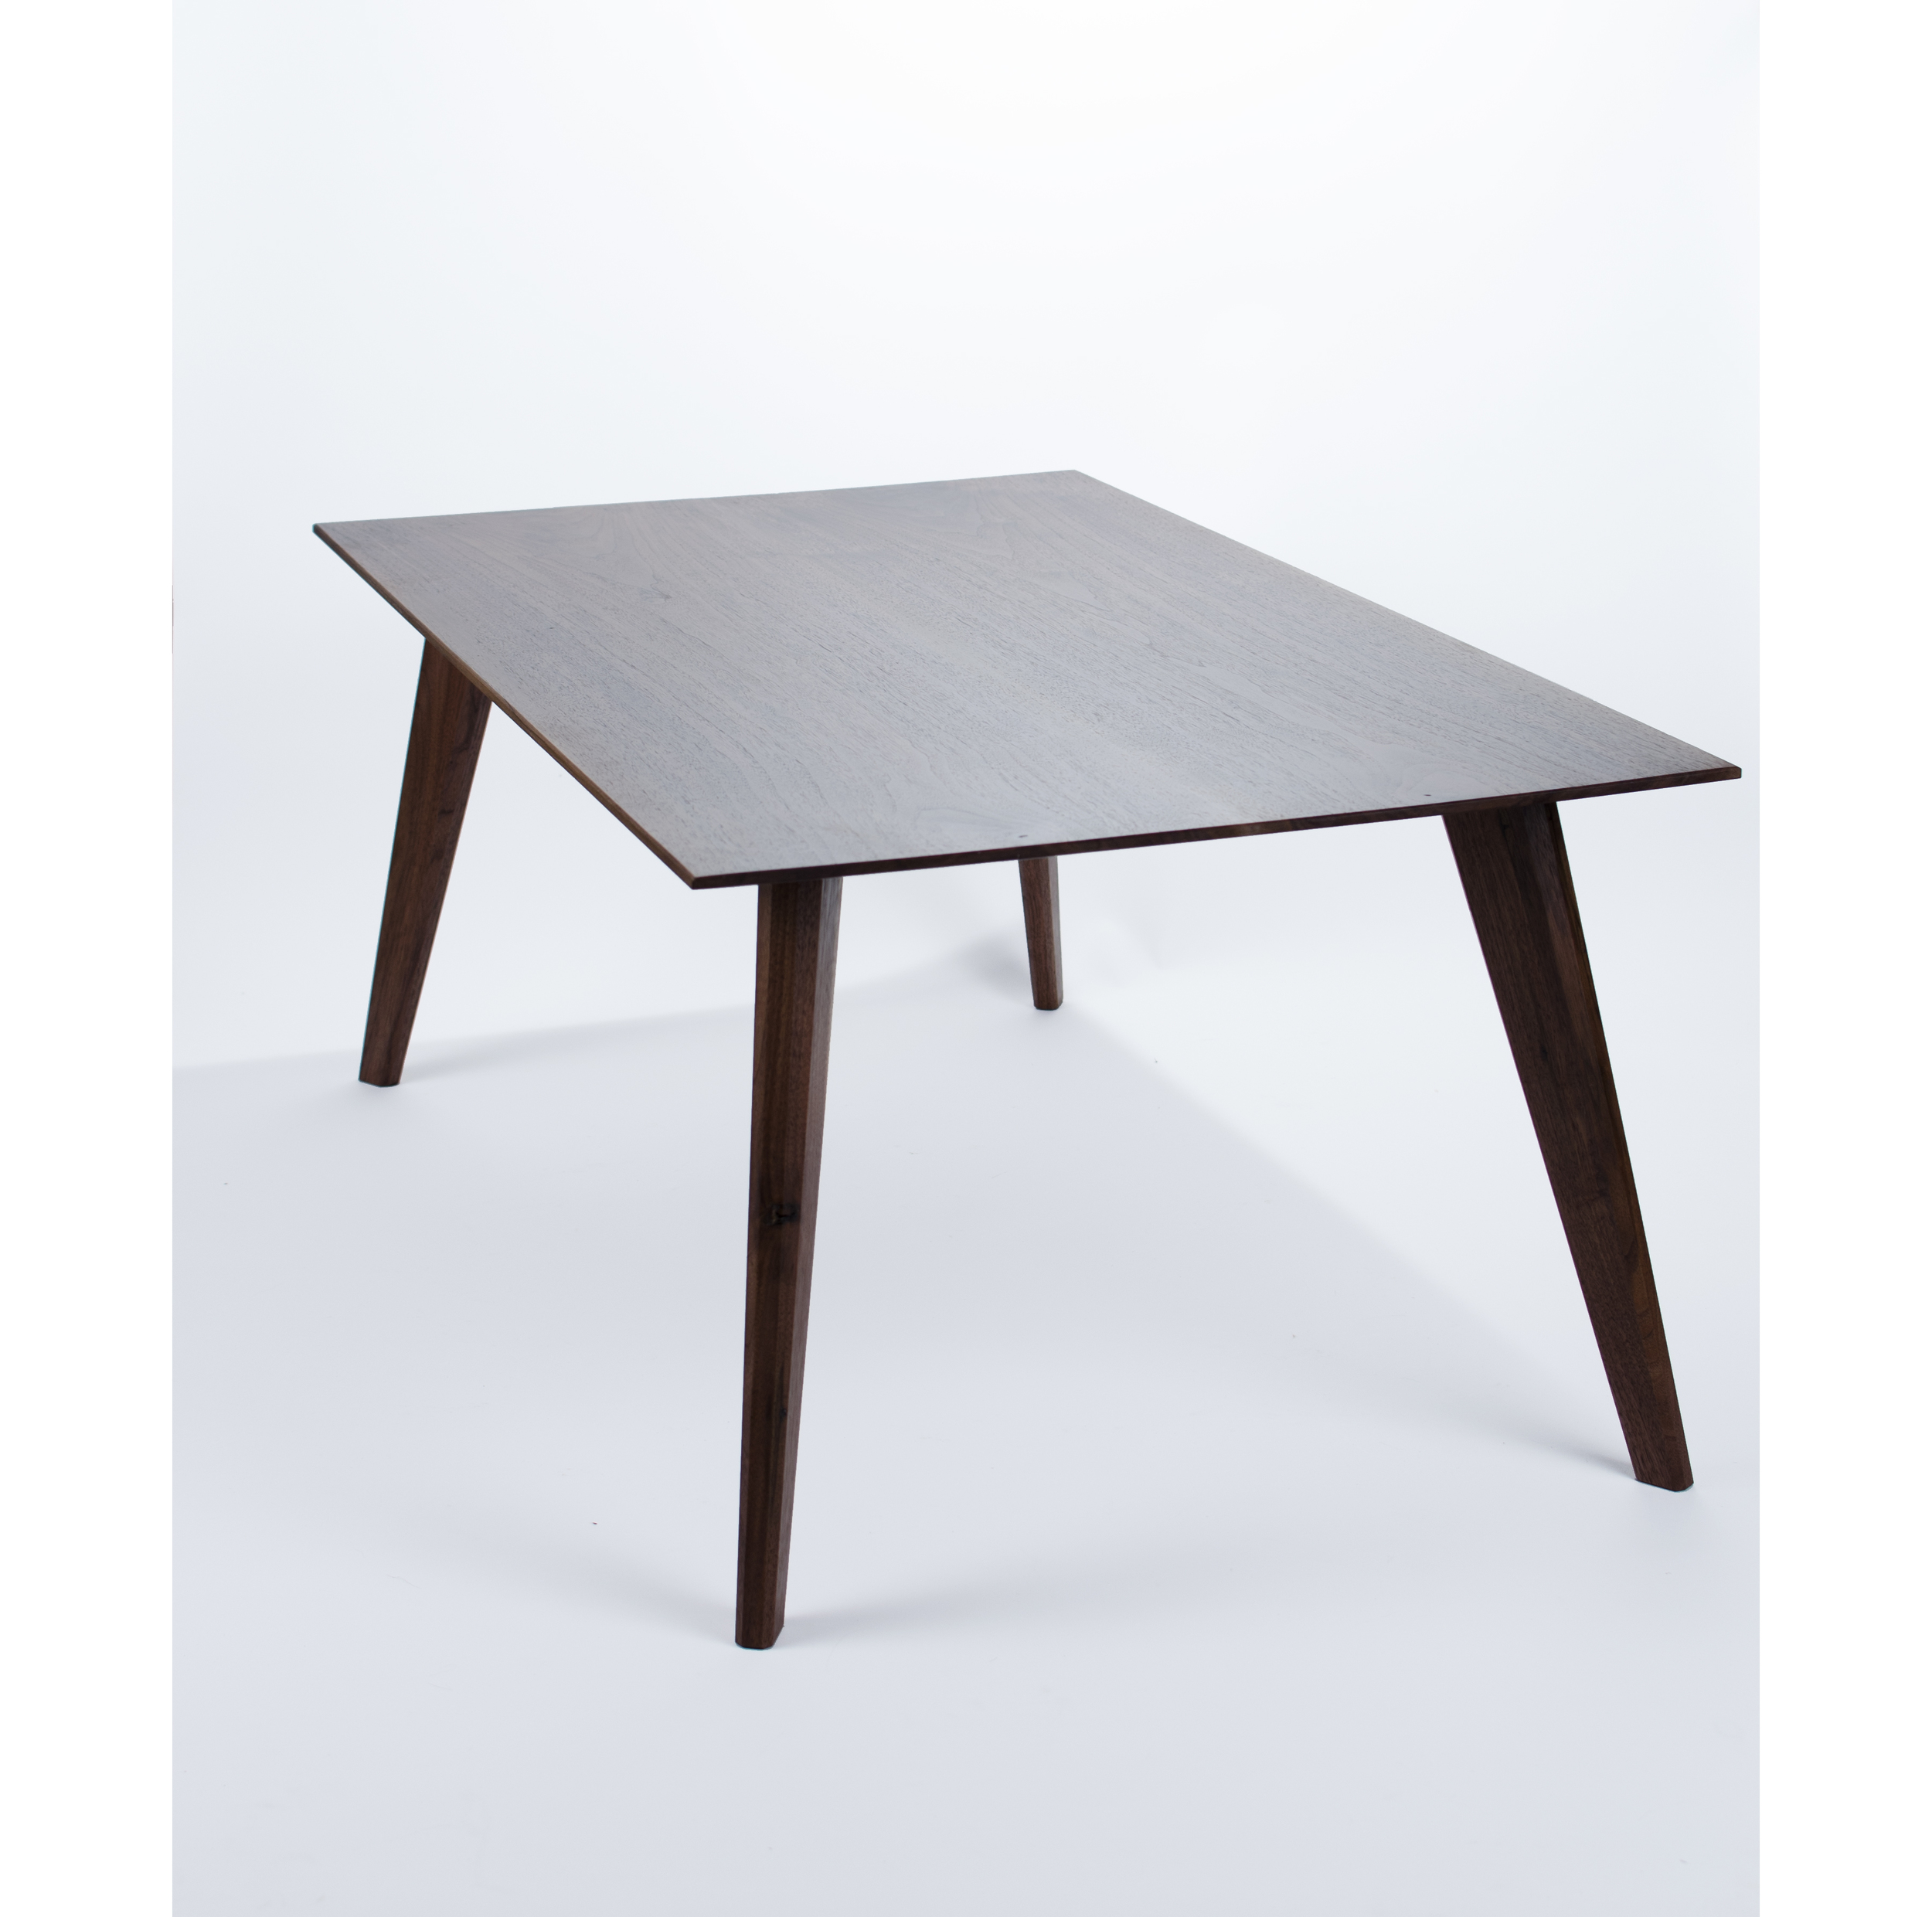 walnut coffee table side angle.jpg